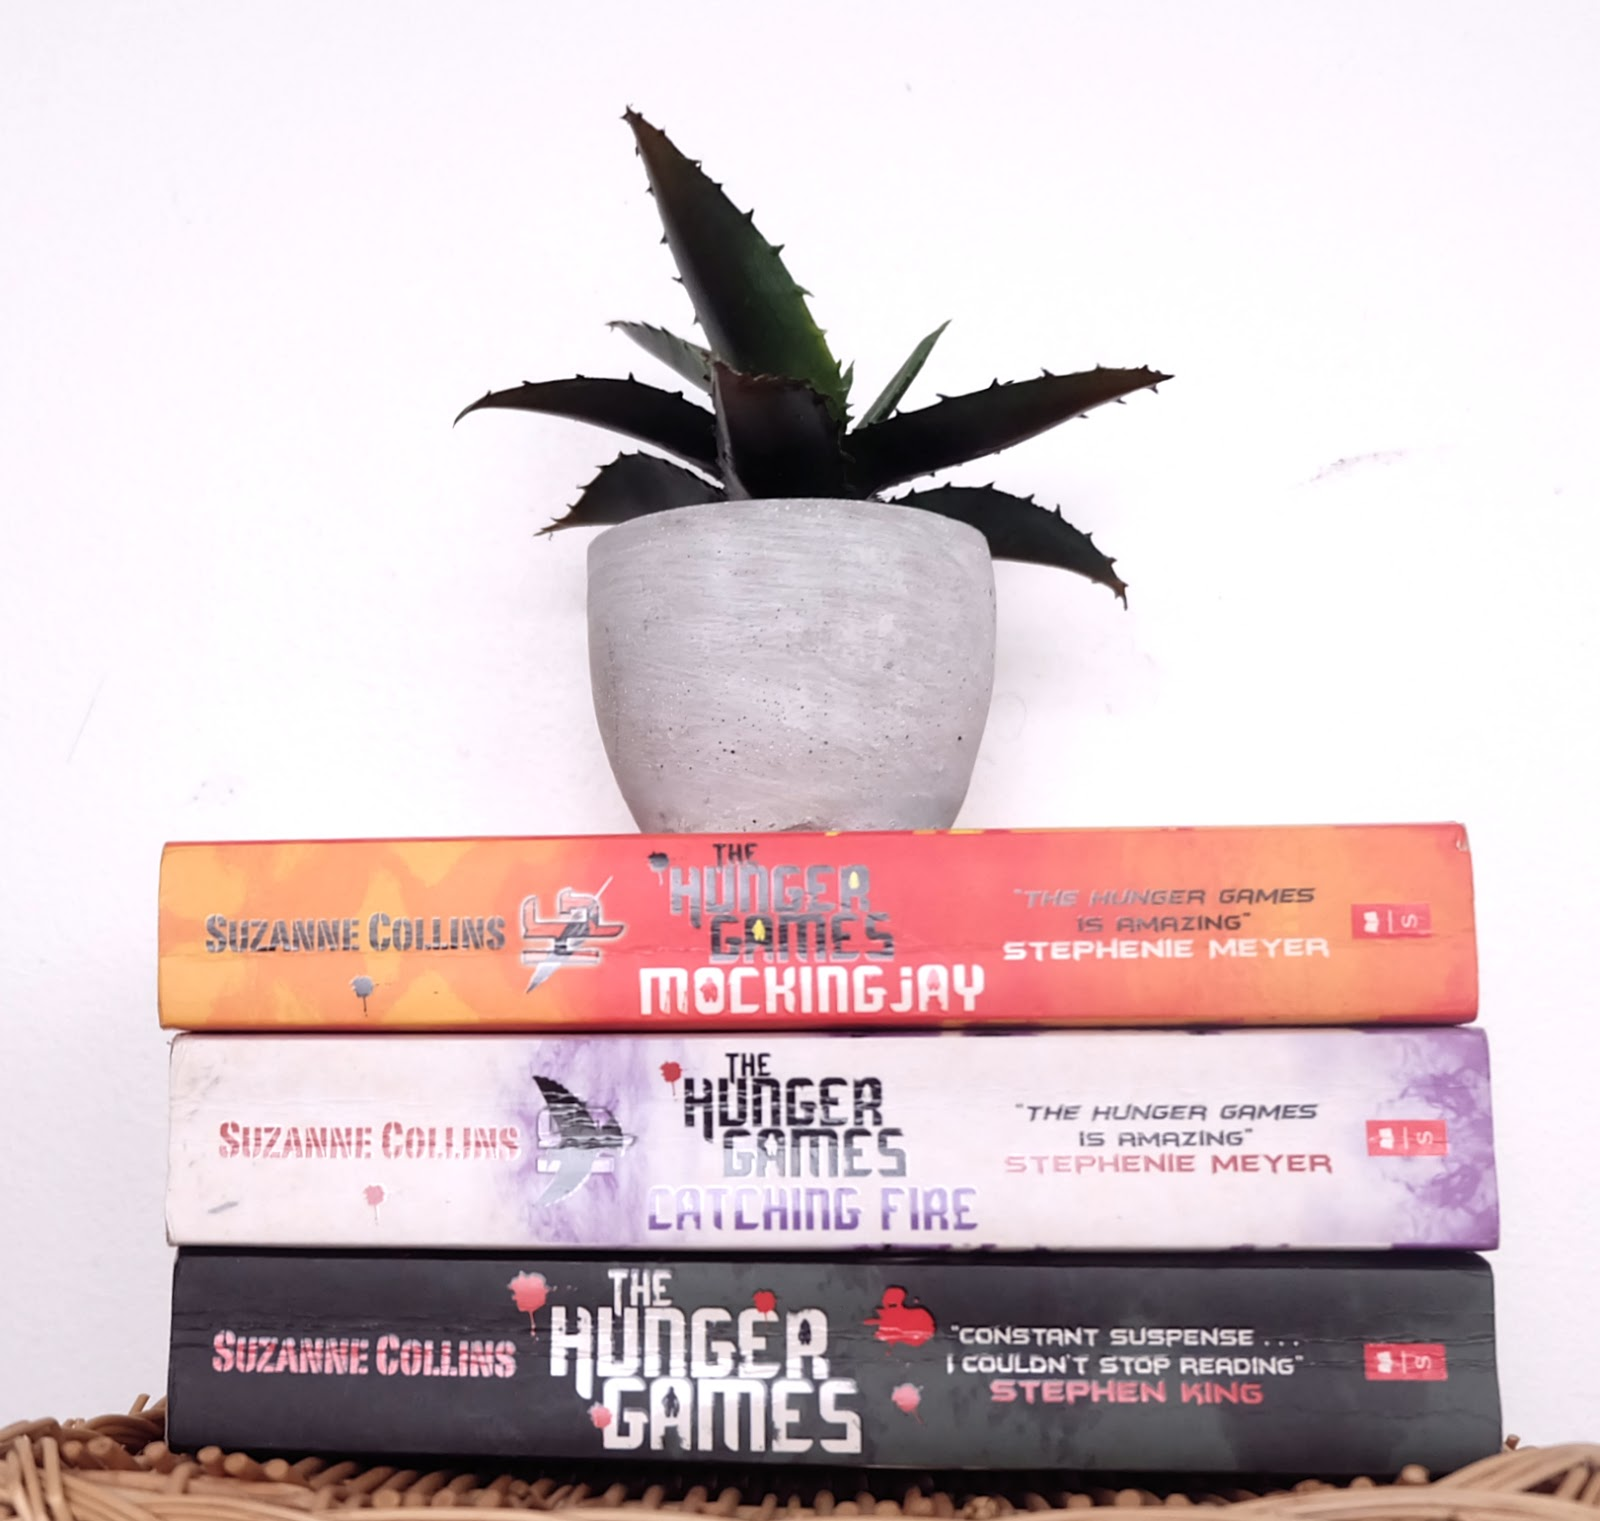 the hunger games trilogy book review, the hunger games, suzanne collins, young adult fiction, dystopian future fiction,